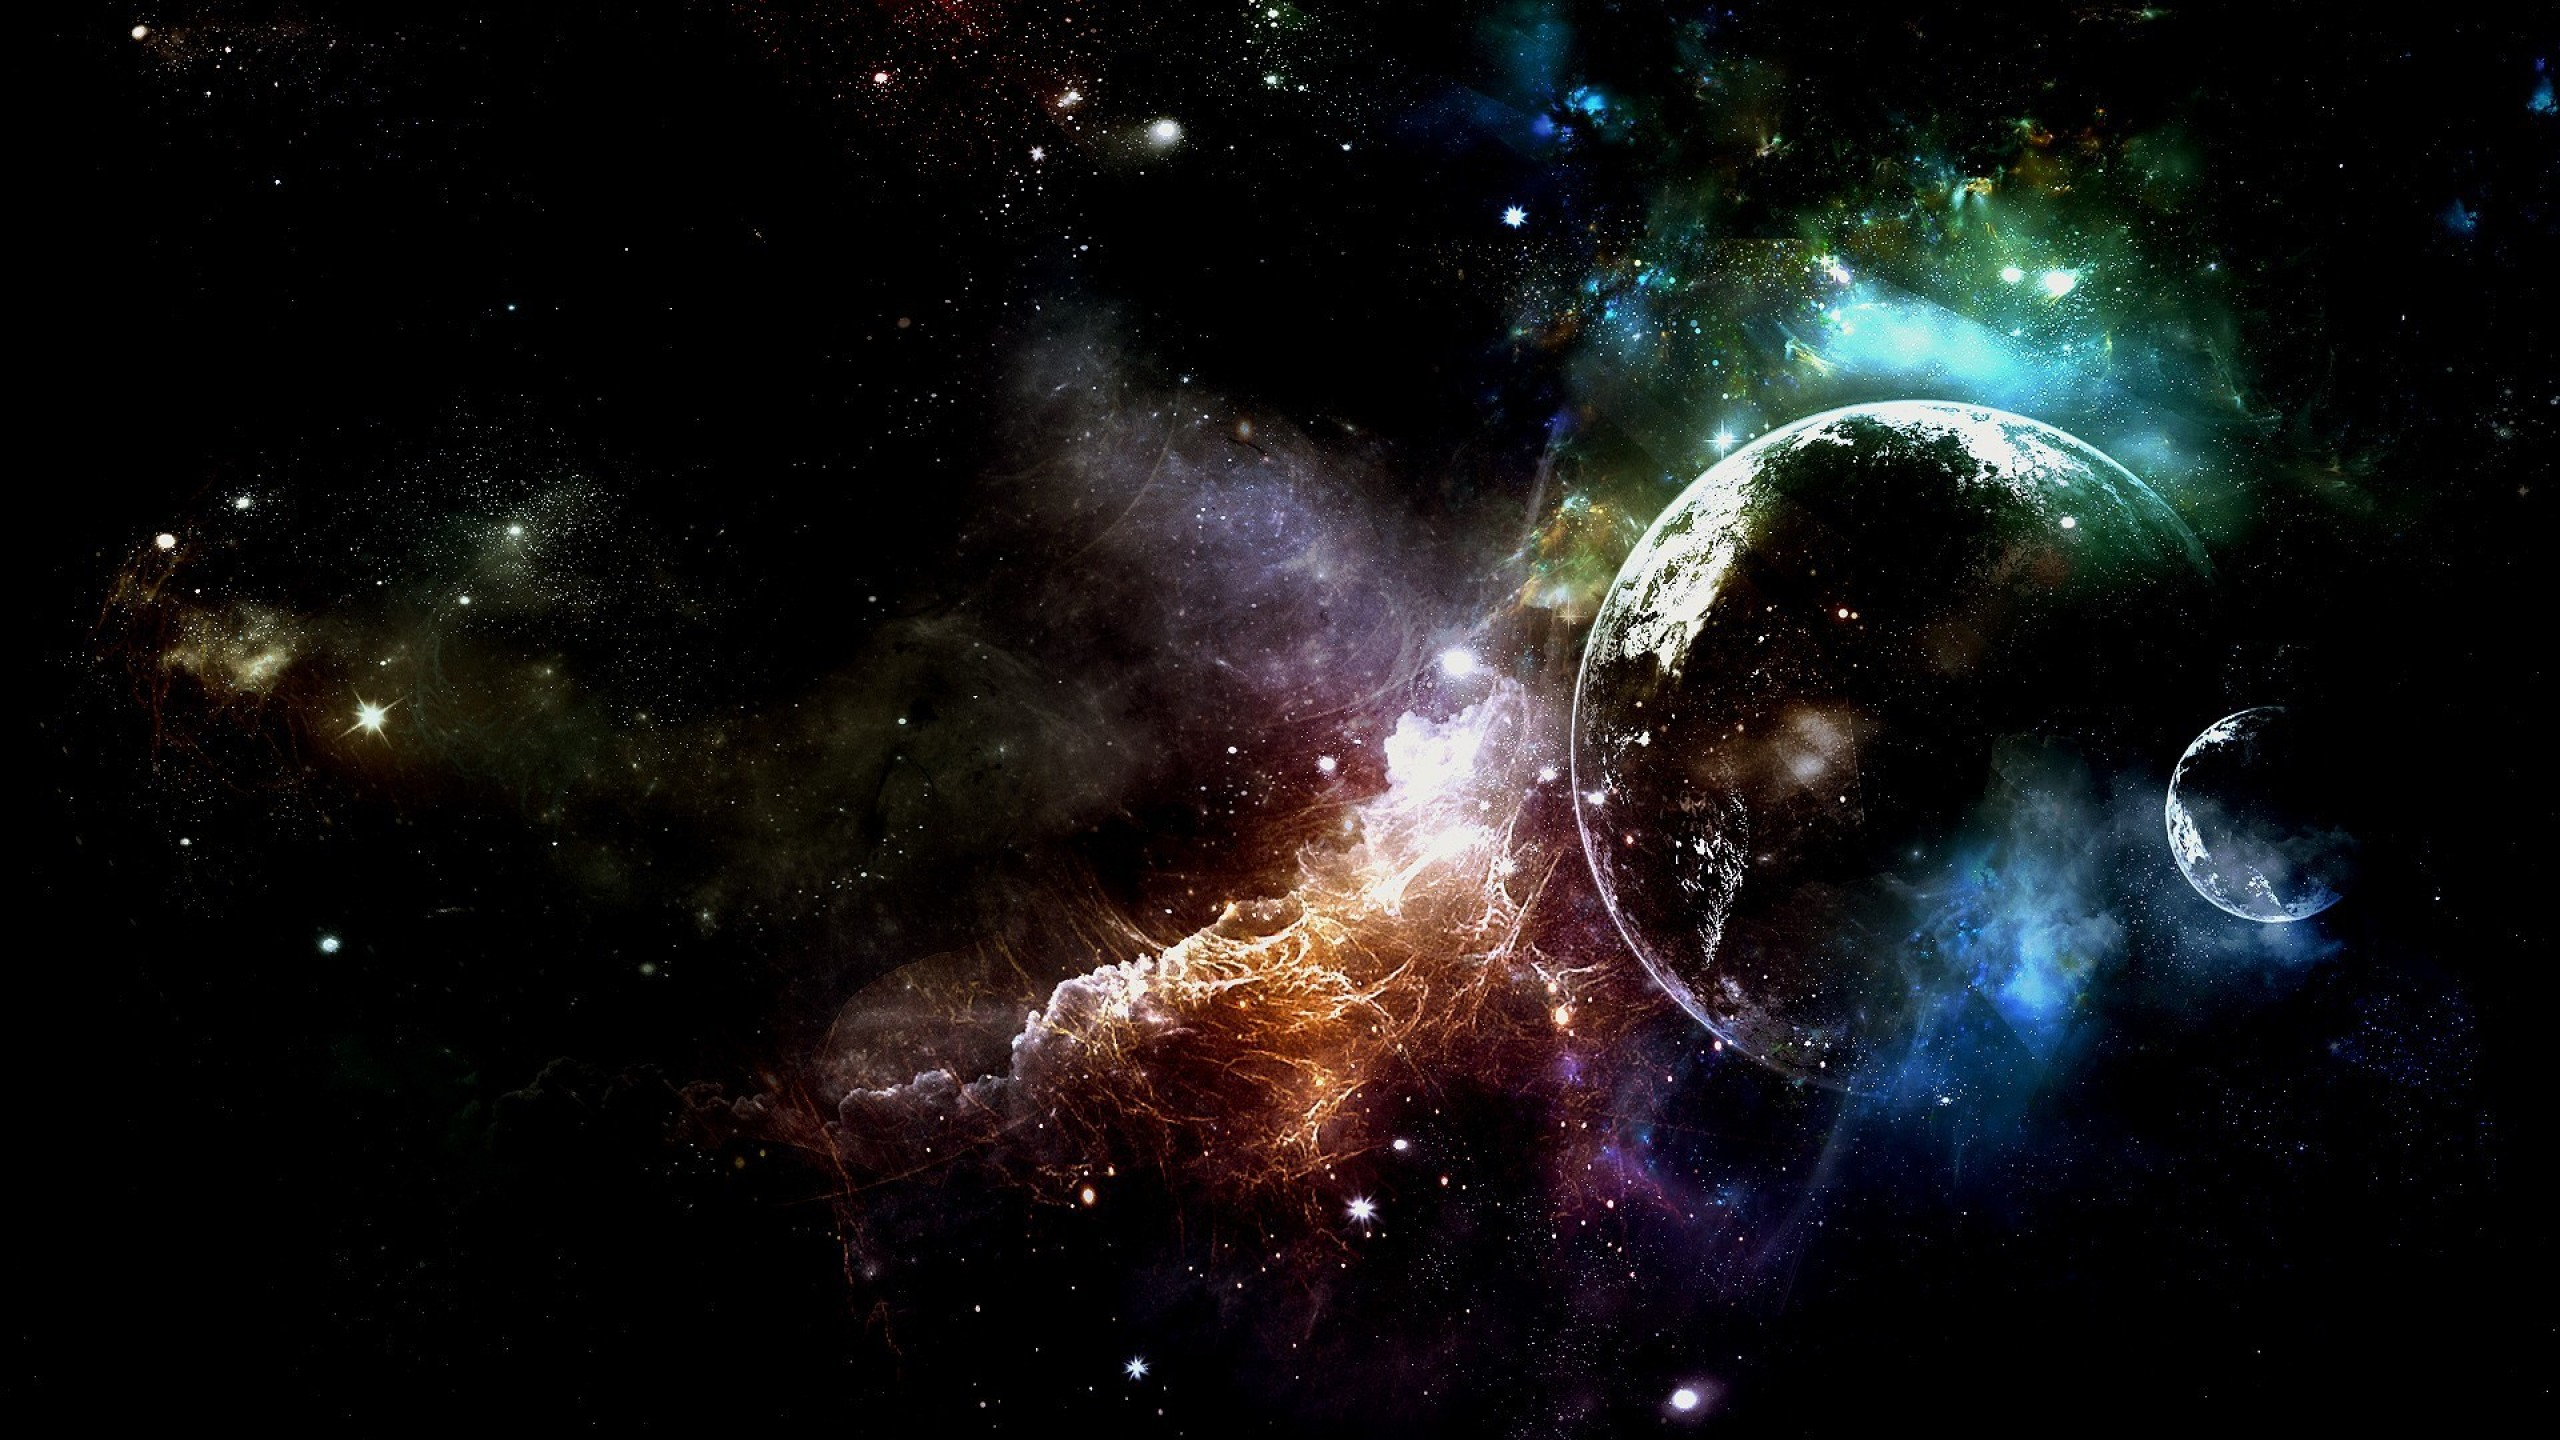 38 1920x1080 space wallpapers on wallpapersafari - Space backgrounds 1920x1080 ...